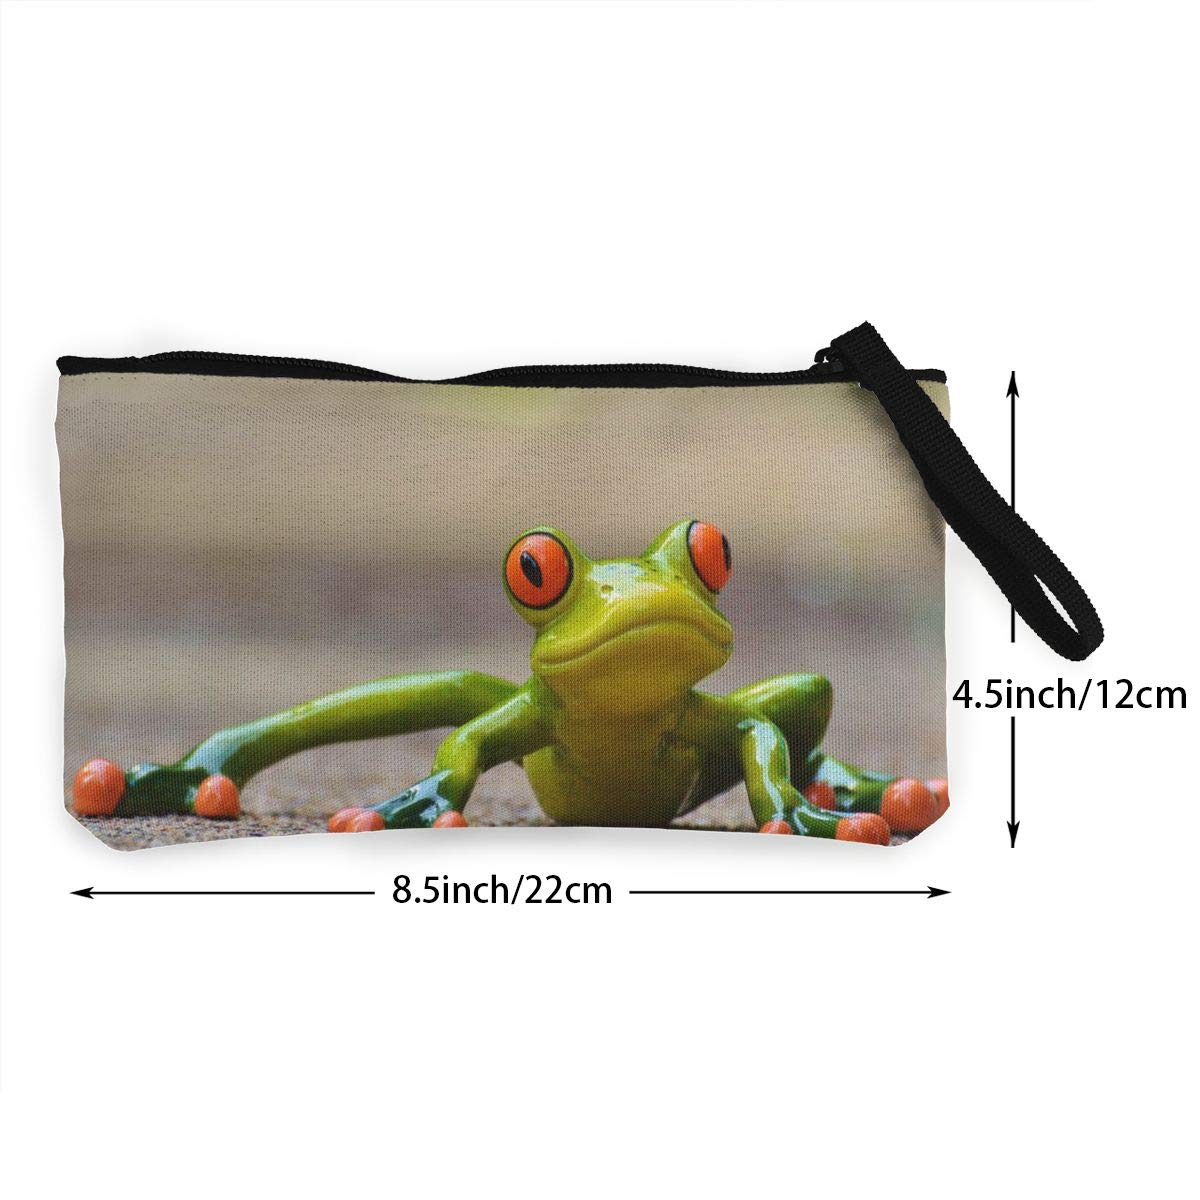 Figurine Of Frog Zipper Canvas Coin Purse Wallet Make Up Bag,Cellphone Bag With Handle